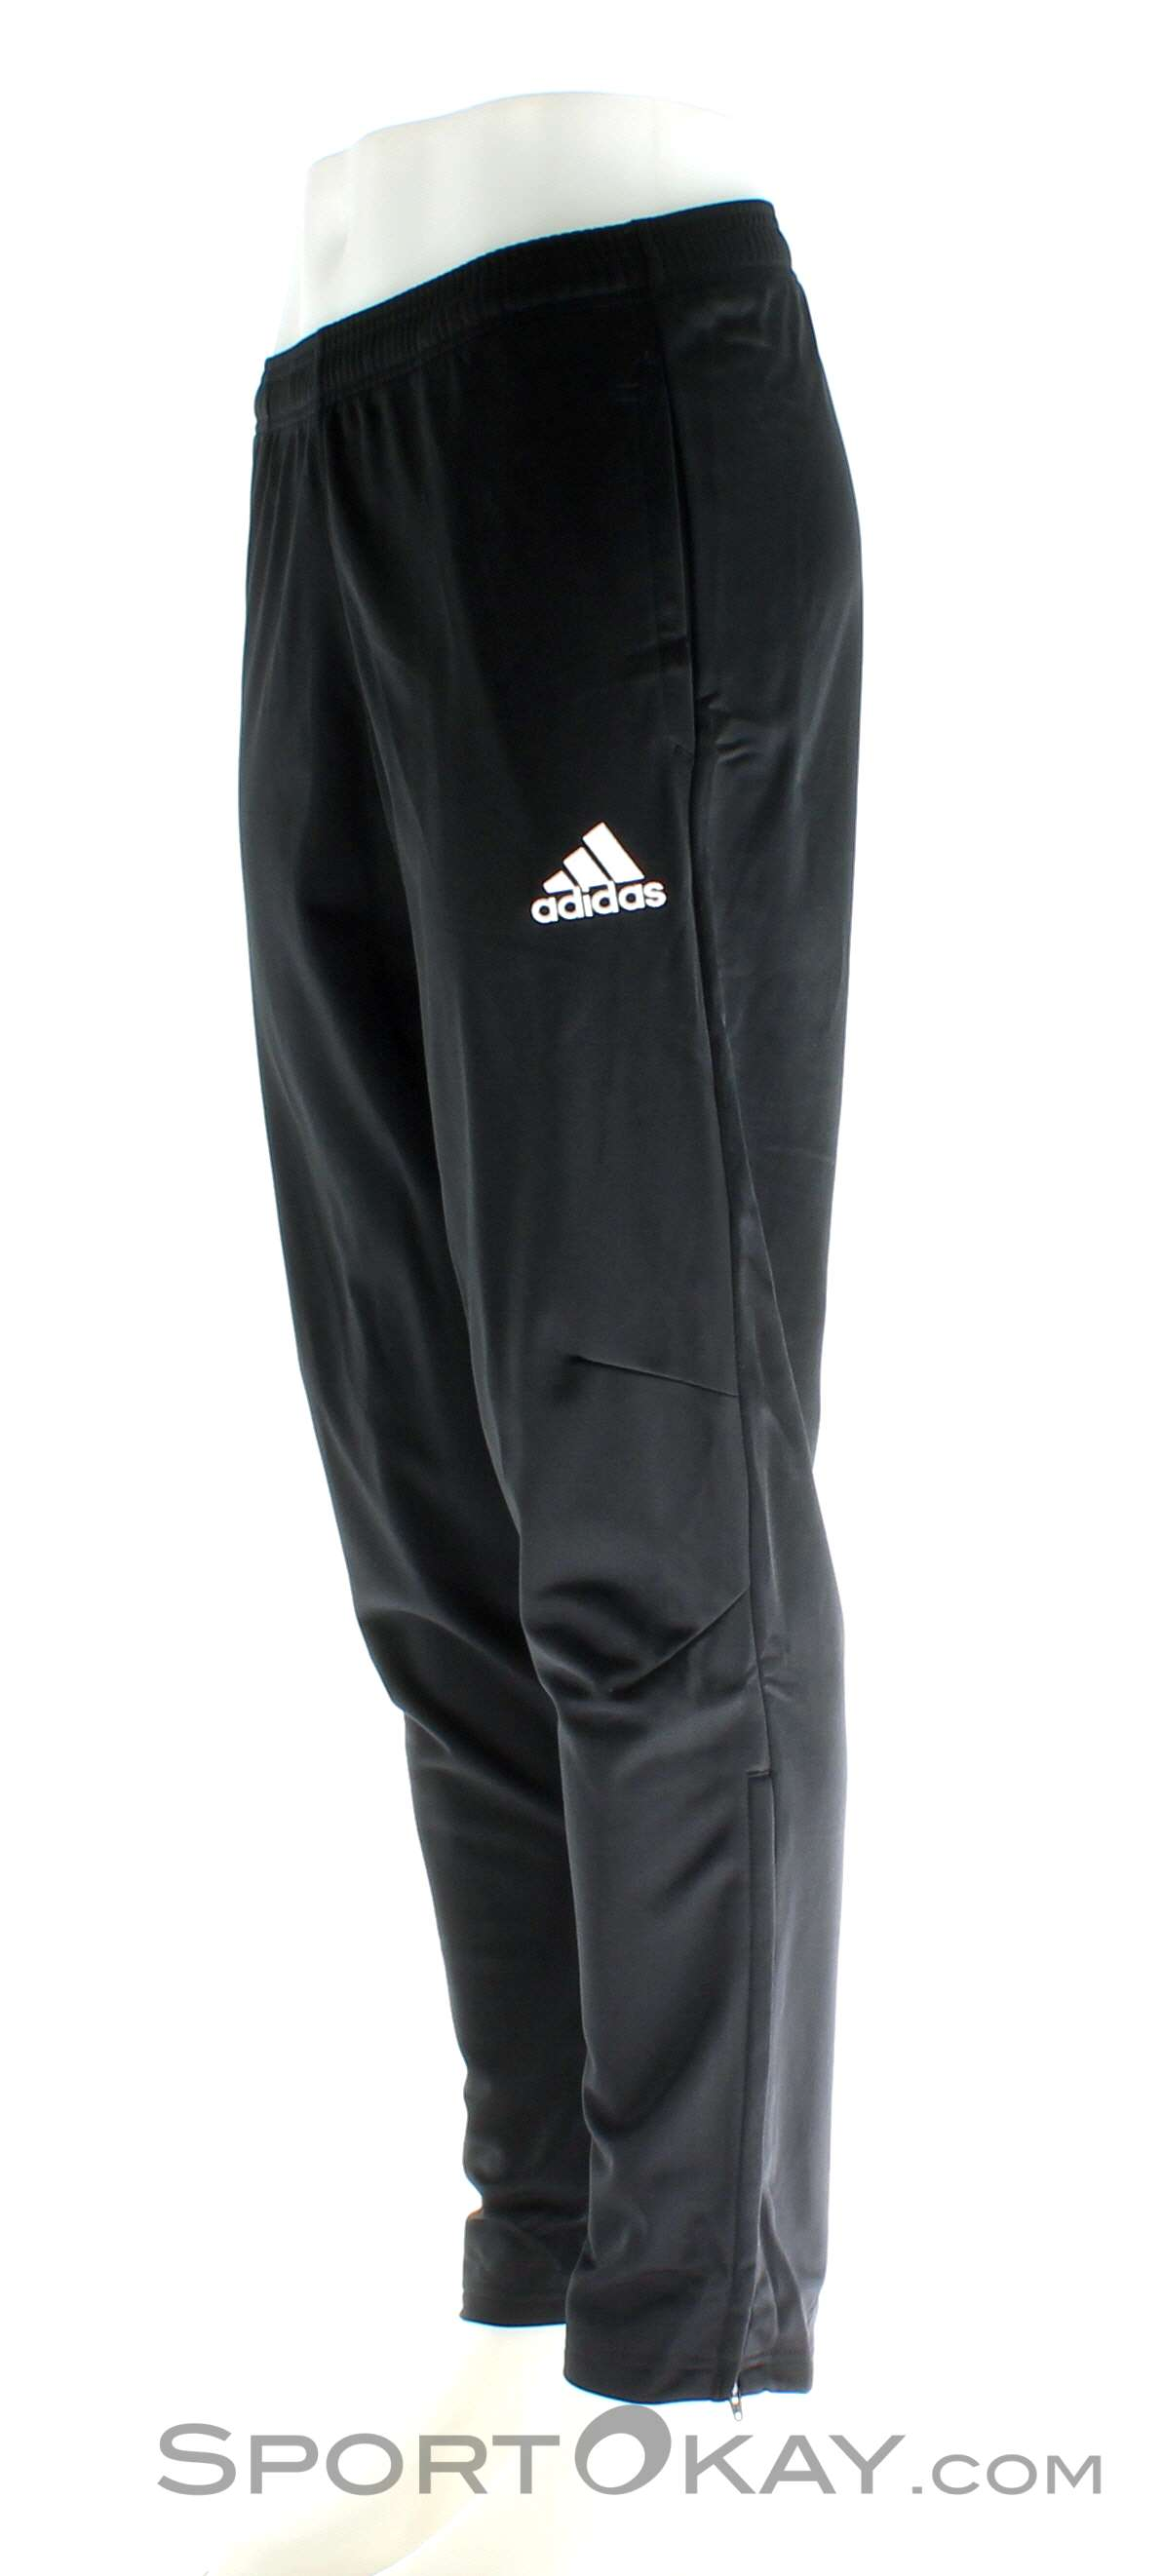 dc51a8762baf73 adidas Tiro 17 Mens Training Pants - Pants - Fitness Clothing ...